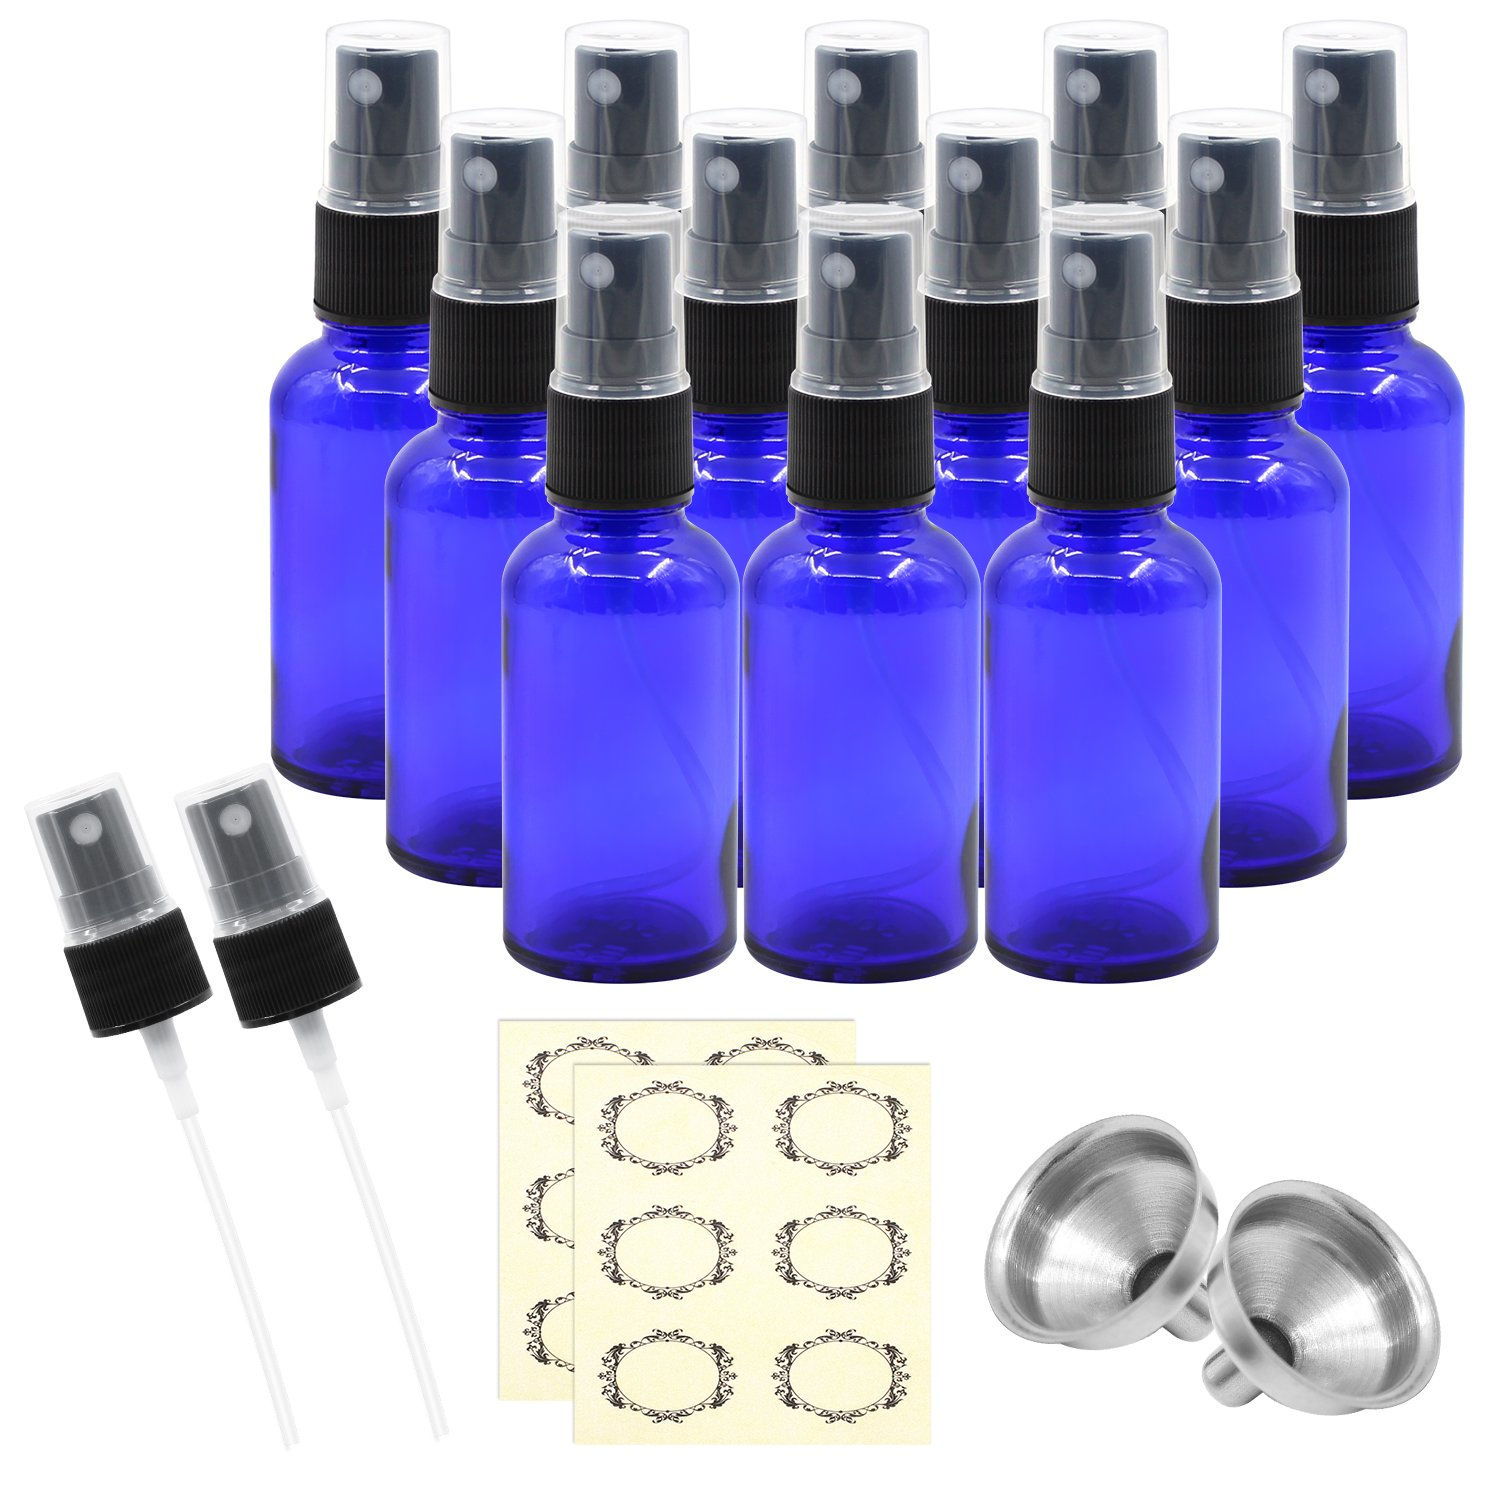 Pack of 12, 1 oz Cobalt Blue Glass Bottles with Black Fine Mist Sprayers by Mavogel,Including 2 Extra Black Fine Mist Sprayers, 2 Stainless Steel Mini Funnel,2 Transfer Pipettes, 12 Bottle Labels